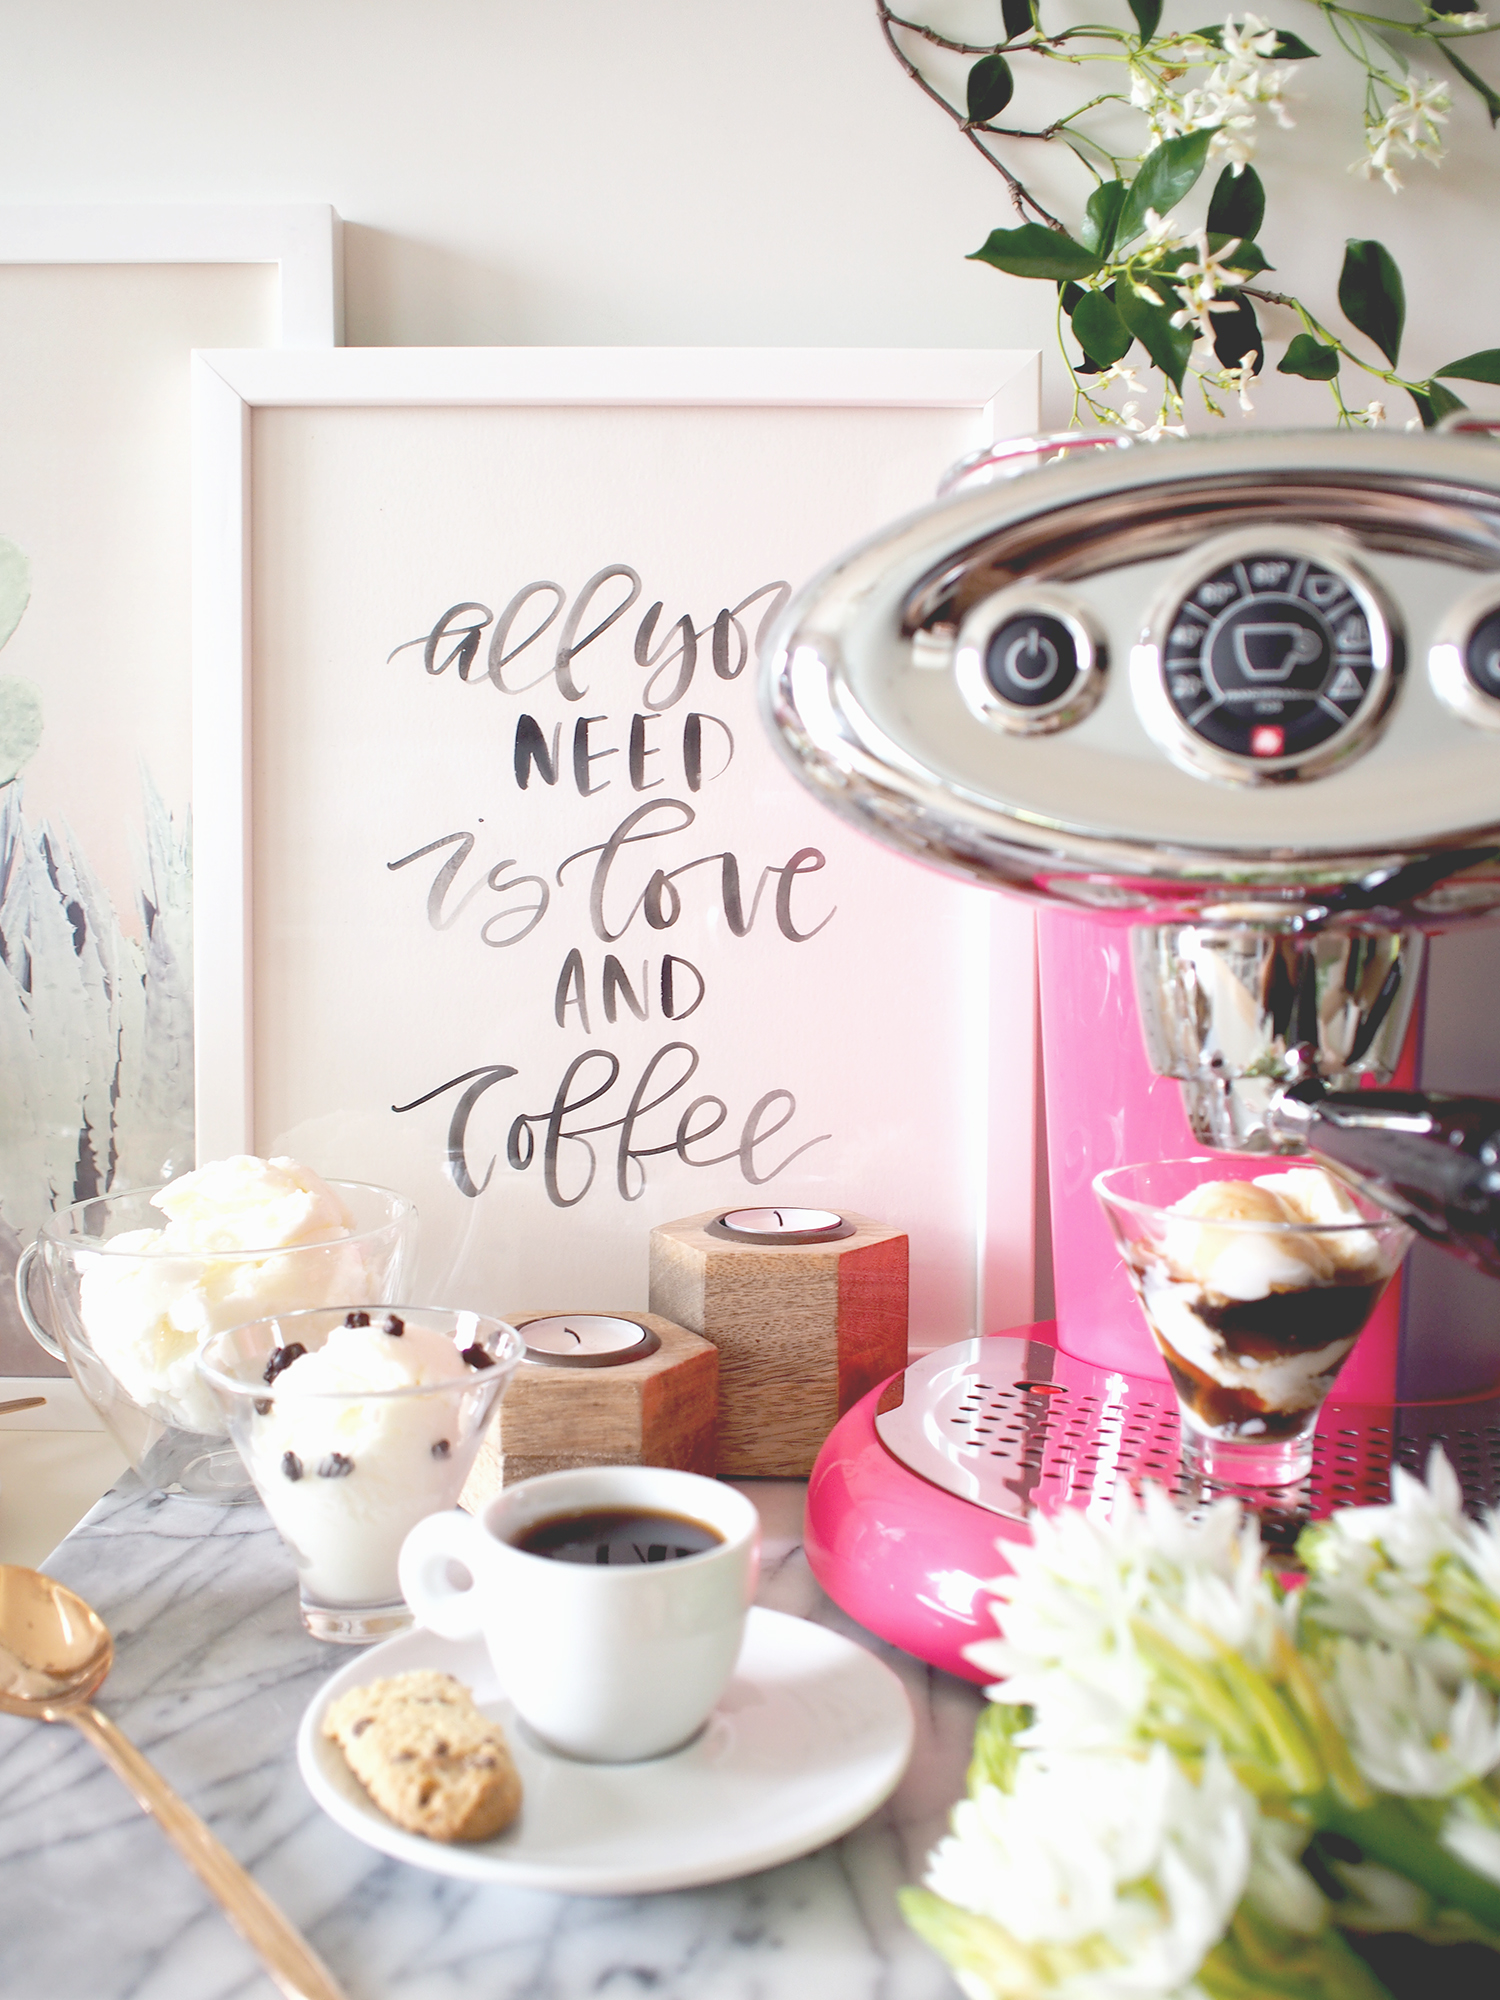 All you need is love and coffee (truth). Watercolor lettering quote for a coffee/espresso bar | A Fabulous Fete